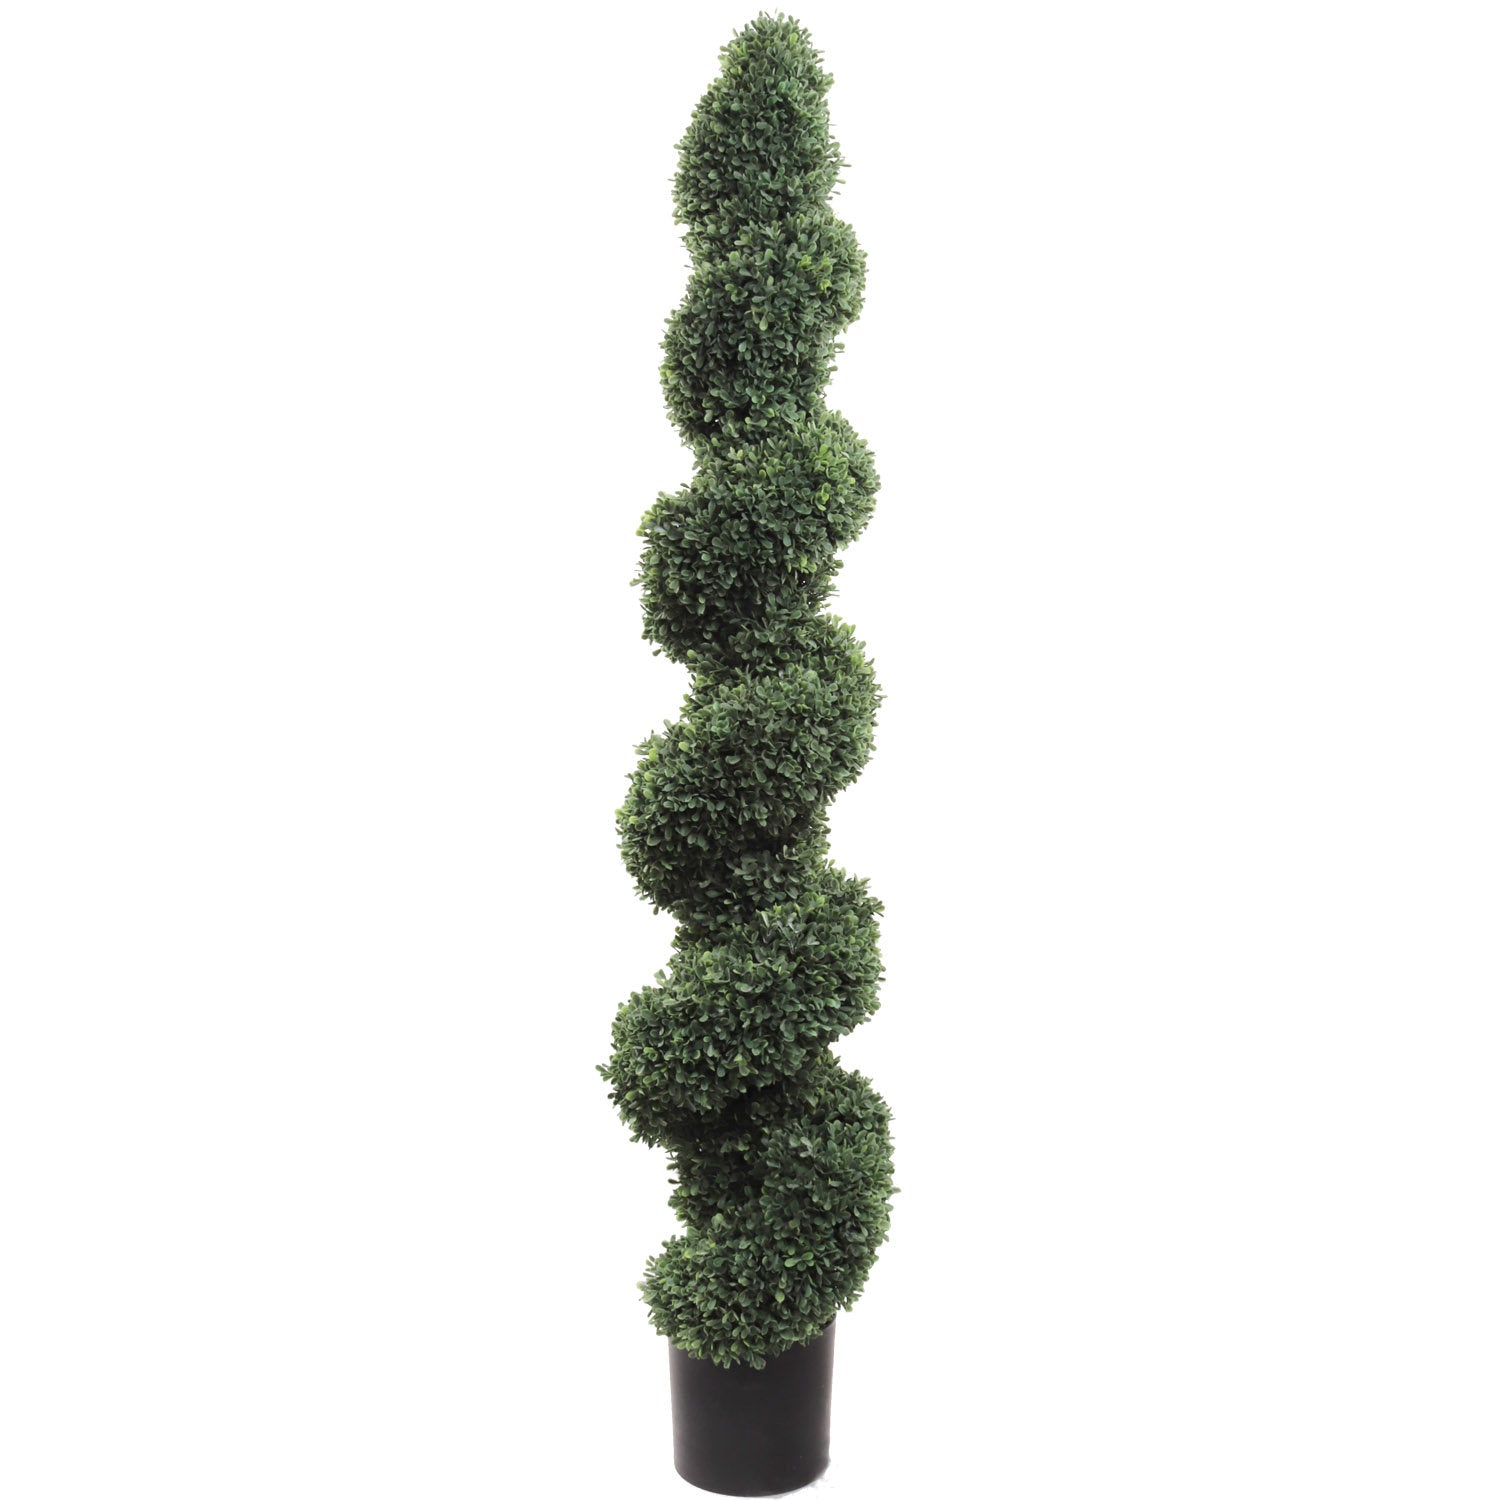 "Boxwood Spiral Topiary 58"" Artificial UV Indoor Outdoor"